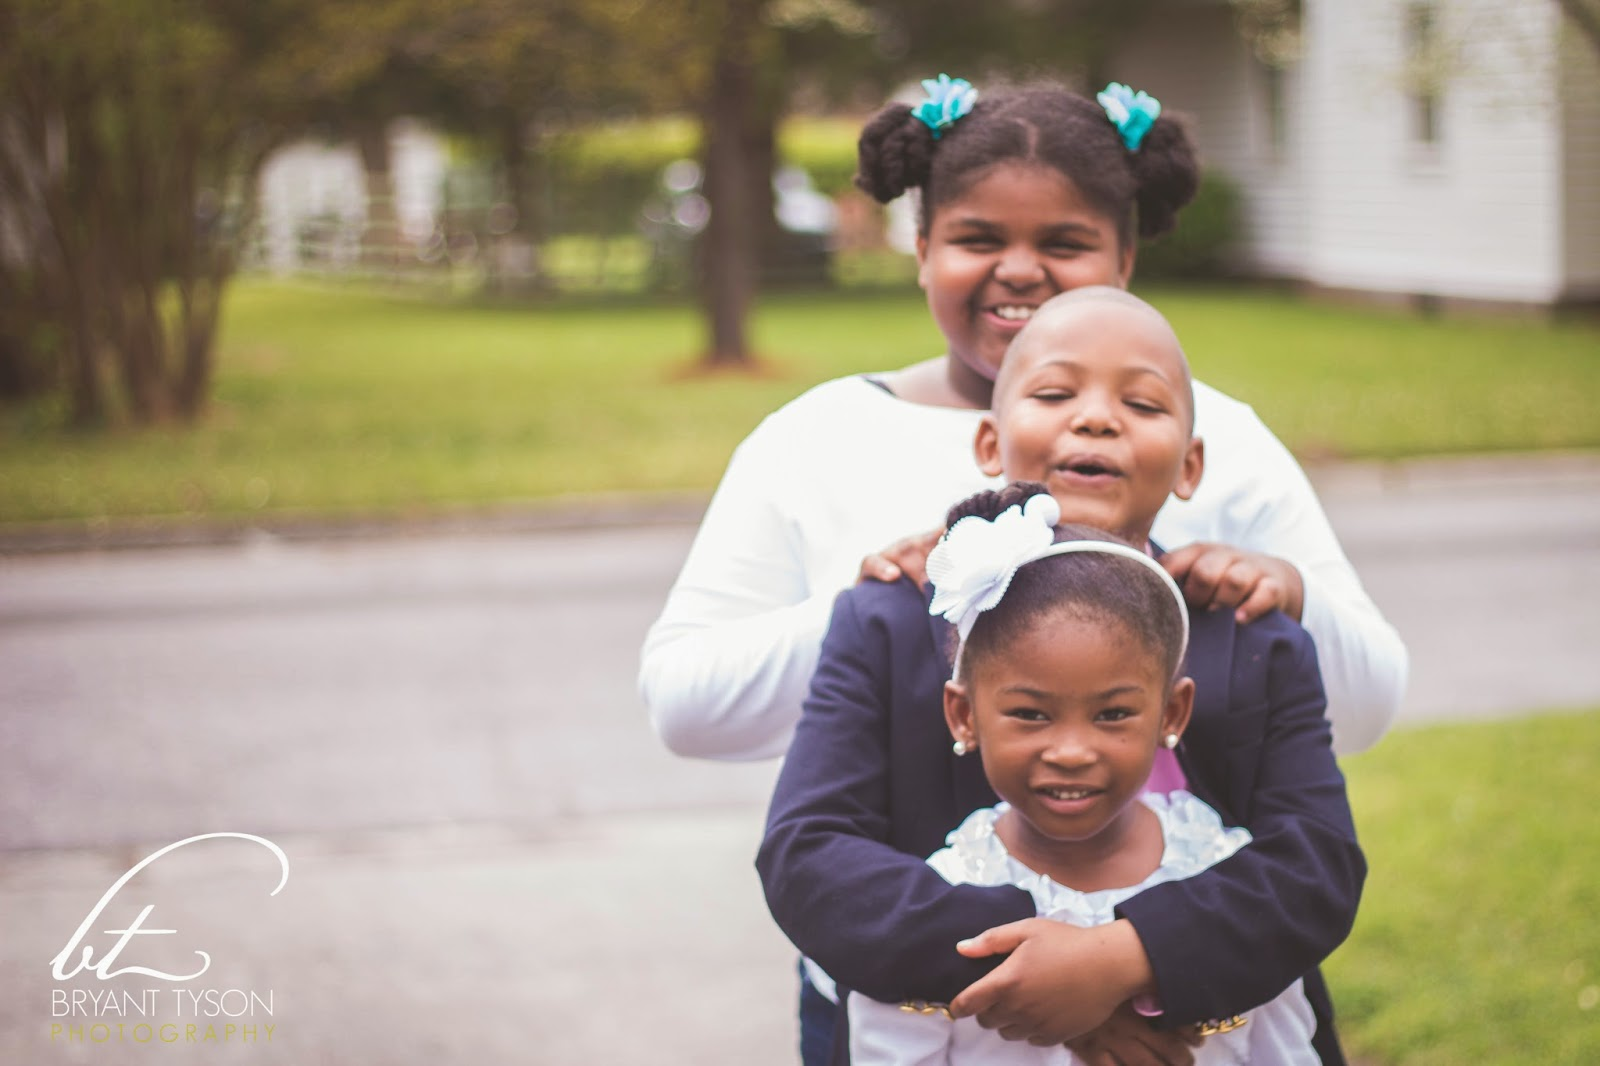 bryant tyson photography greenville nc photographer family portraits easter 2014 7